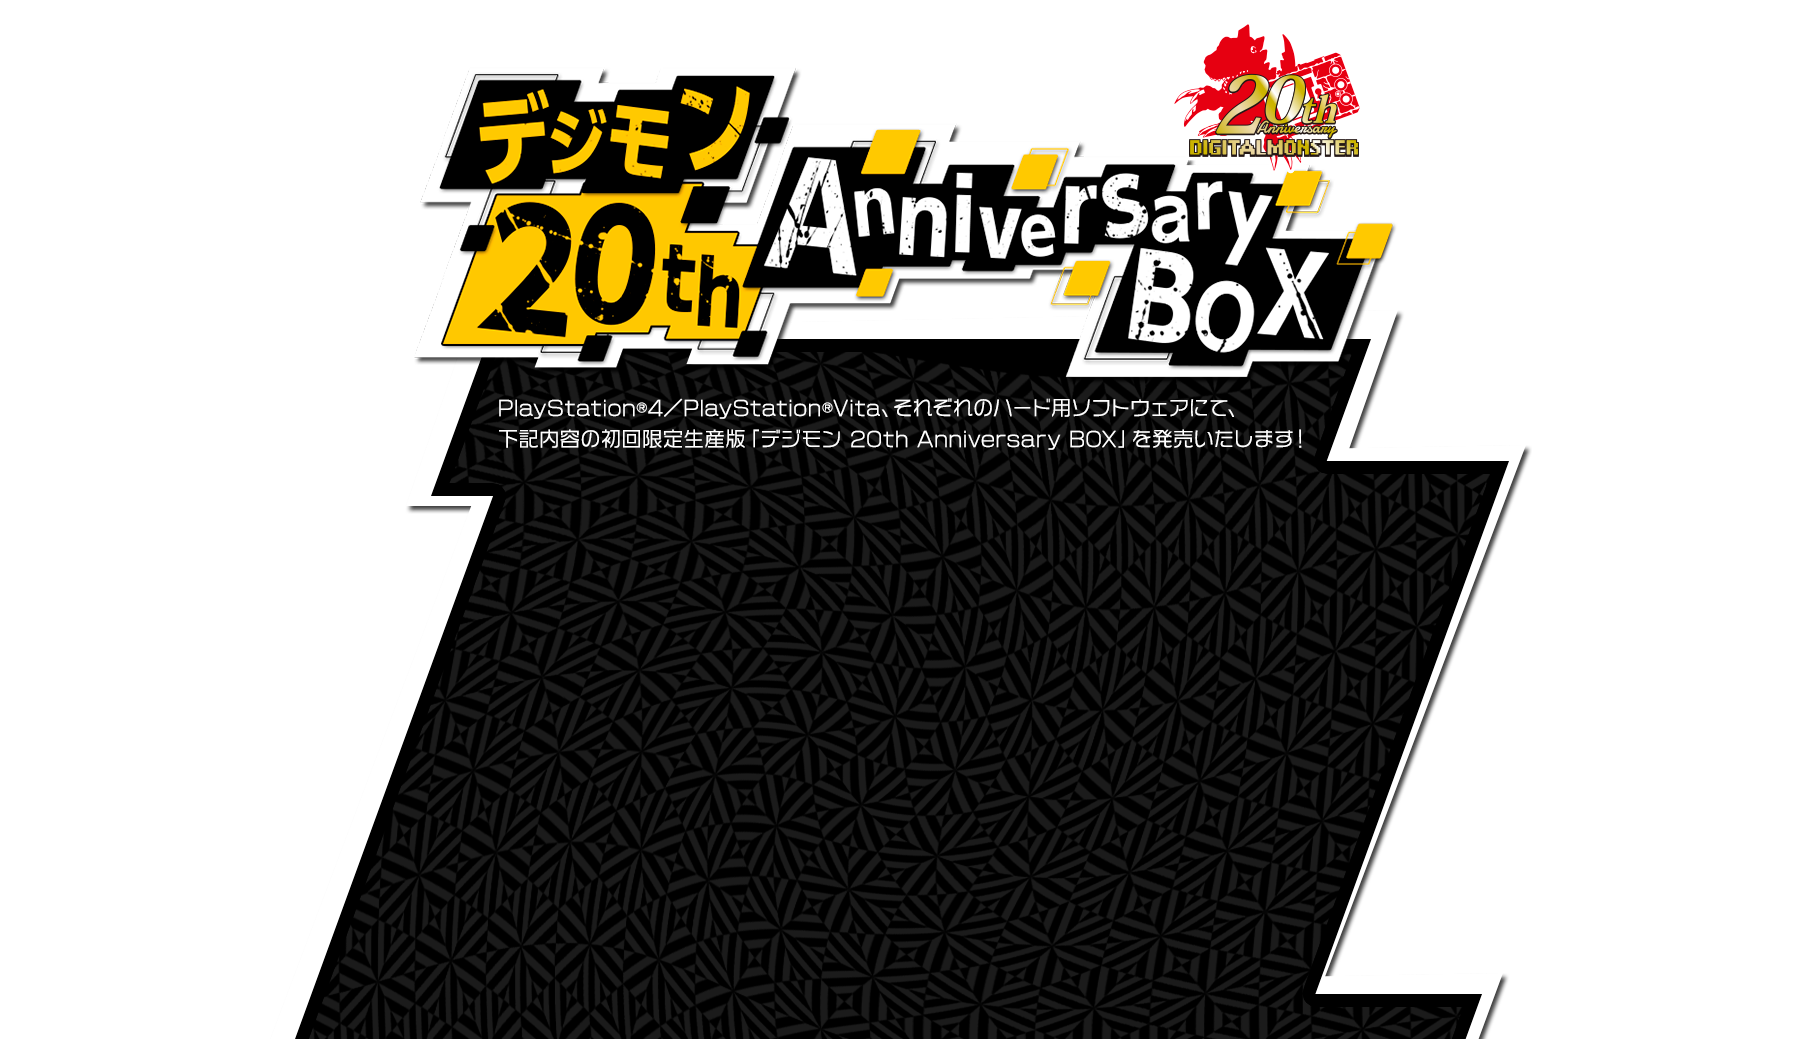 デジモン 20th Anniversary Box